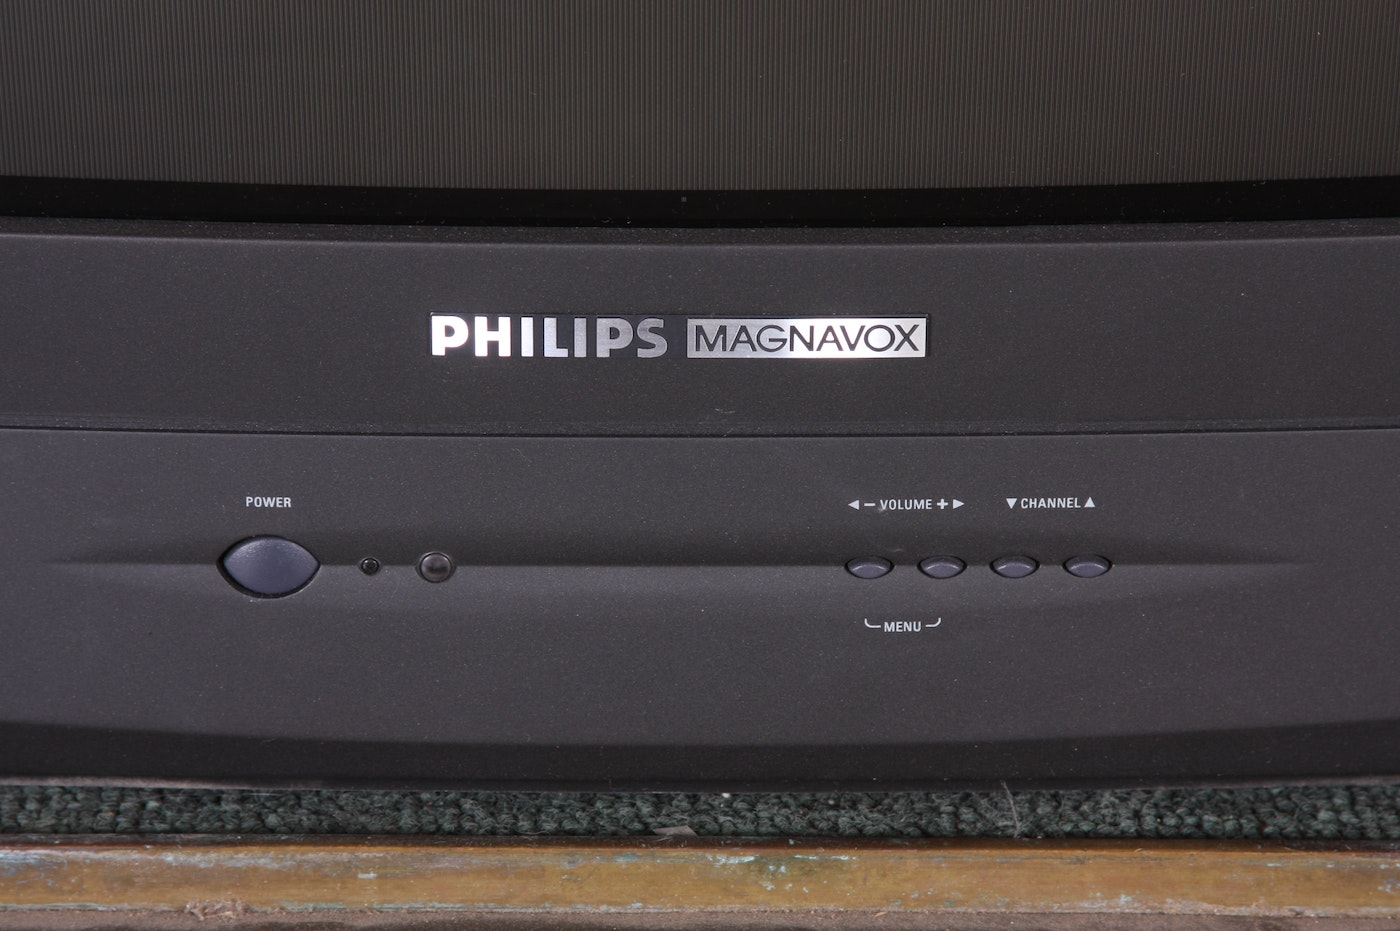 Philips magnavox smart series pictures to pin on pinterest thepinsta philips magnavox smart plus series tv receiver ebth 1400x931 philips magnavox smart series tv manual ebook best deal 1500x1036 fandeluxe Image collections